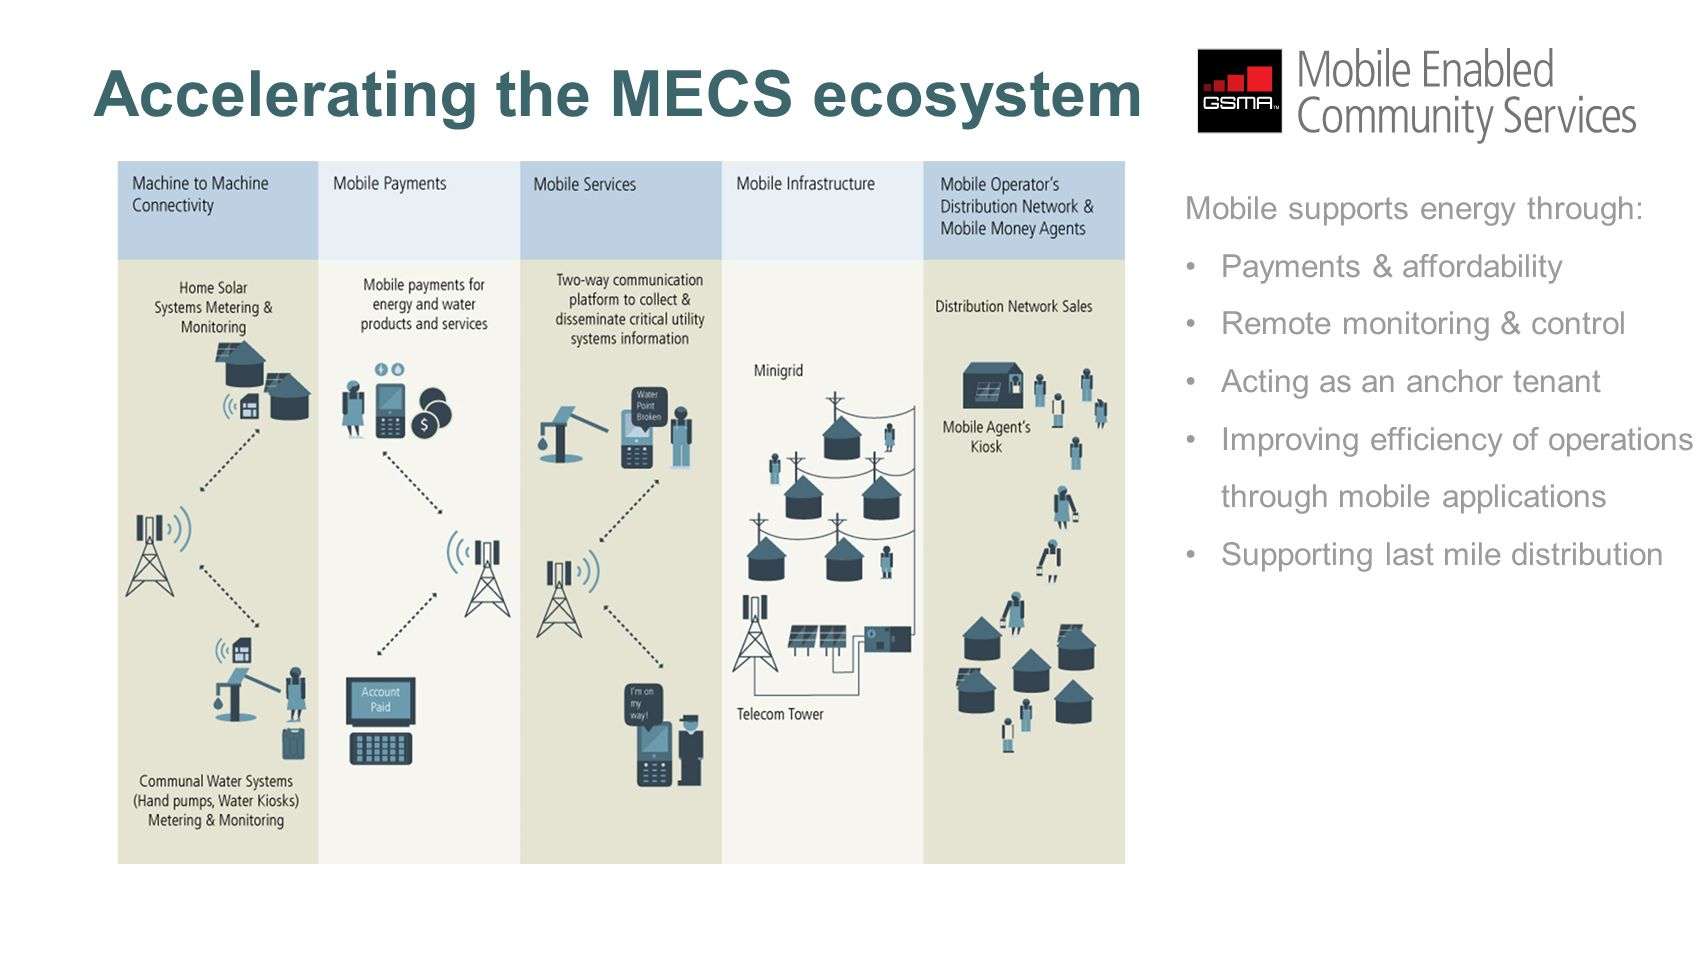 Accelerating the MECS ecosystem Mobile supports energy through: Payments & affordability Remote monitoring & control Acting as an anchor tenant Improving efficiency of operations through mobile applications Supporting last mile distribution